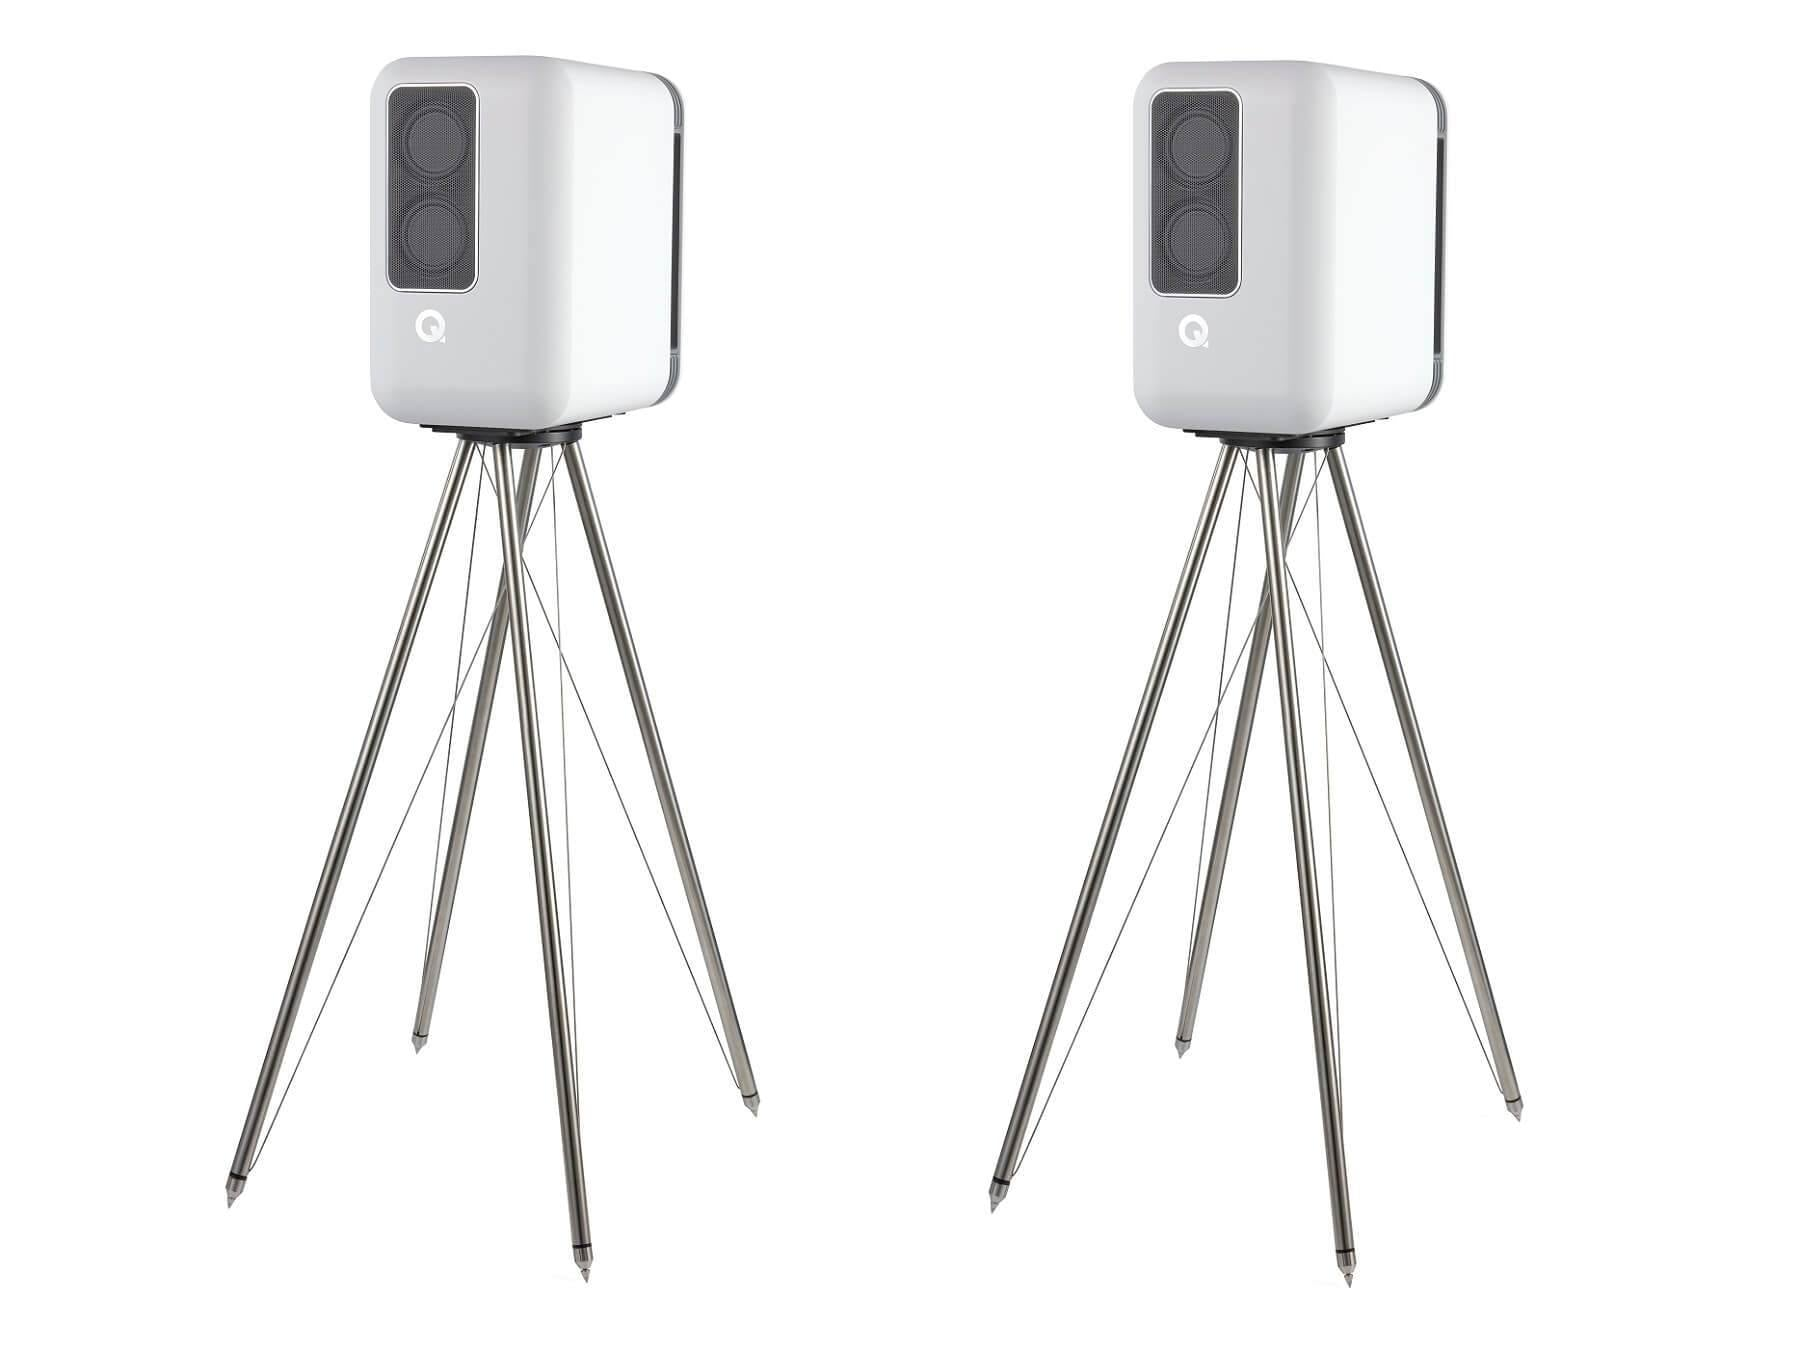 Q Acoustics Q Active 200 - White Speakers and Stands